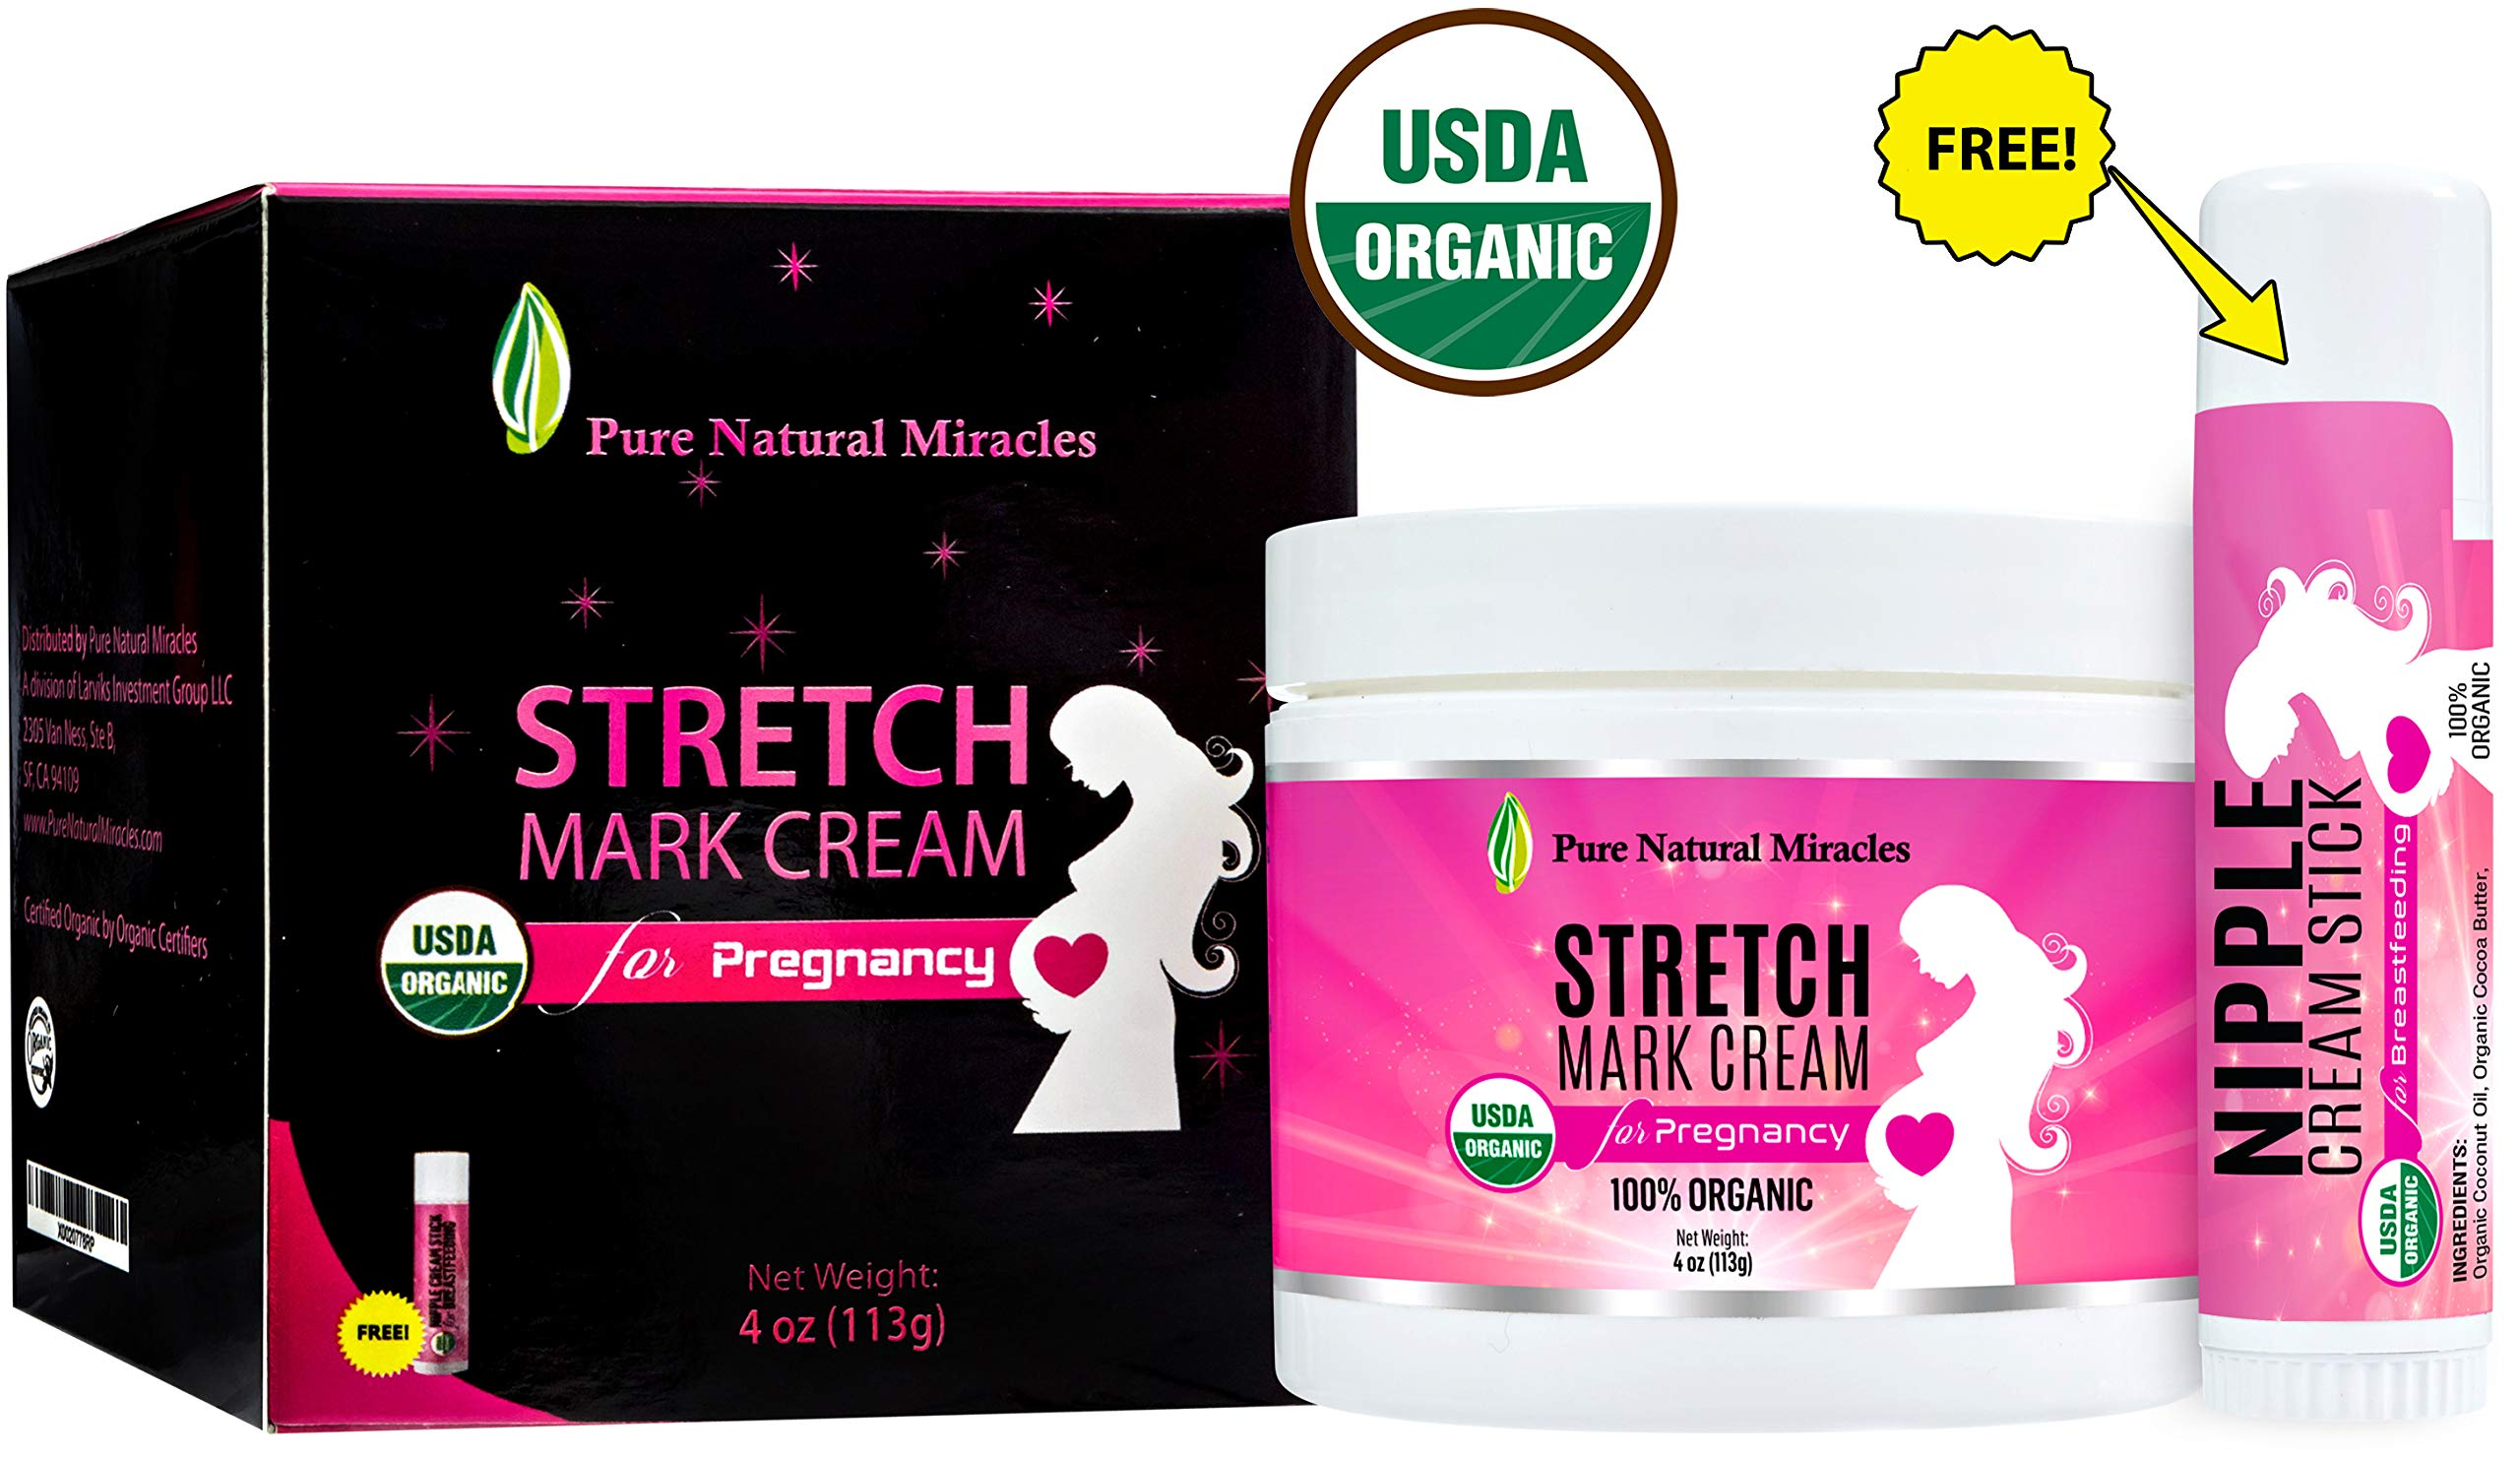 PNM Anti Stretch Mark Cream for Pregnancy, Organic